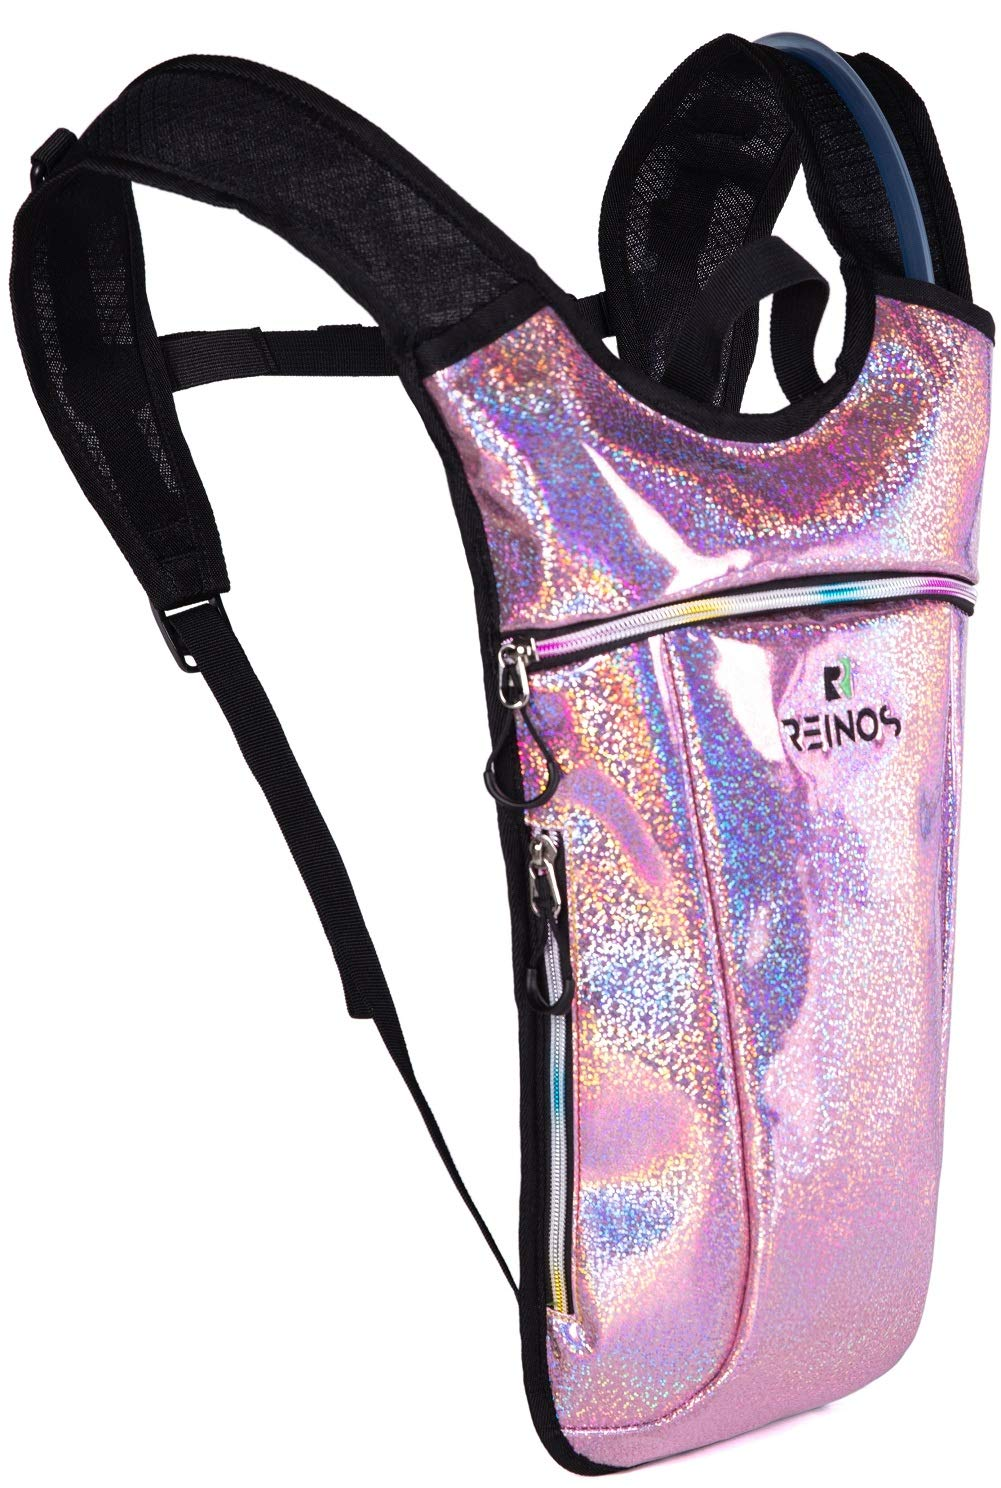 REINOS Hydration Backpack - Light Water Pack - 2L Water Bladder Included for Running, Hiking, Biking, Festivals, Raves (Light Pink Sparkles) by REINOS